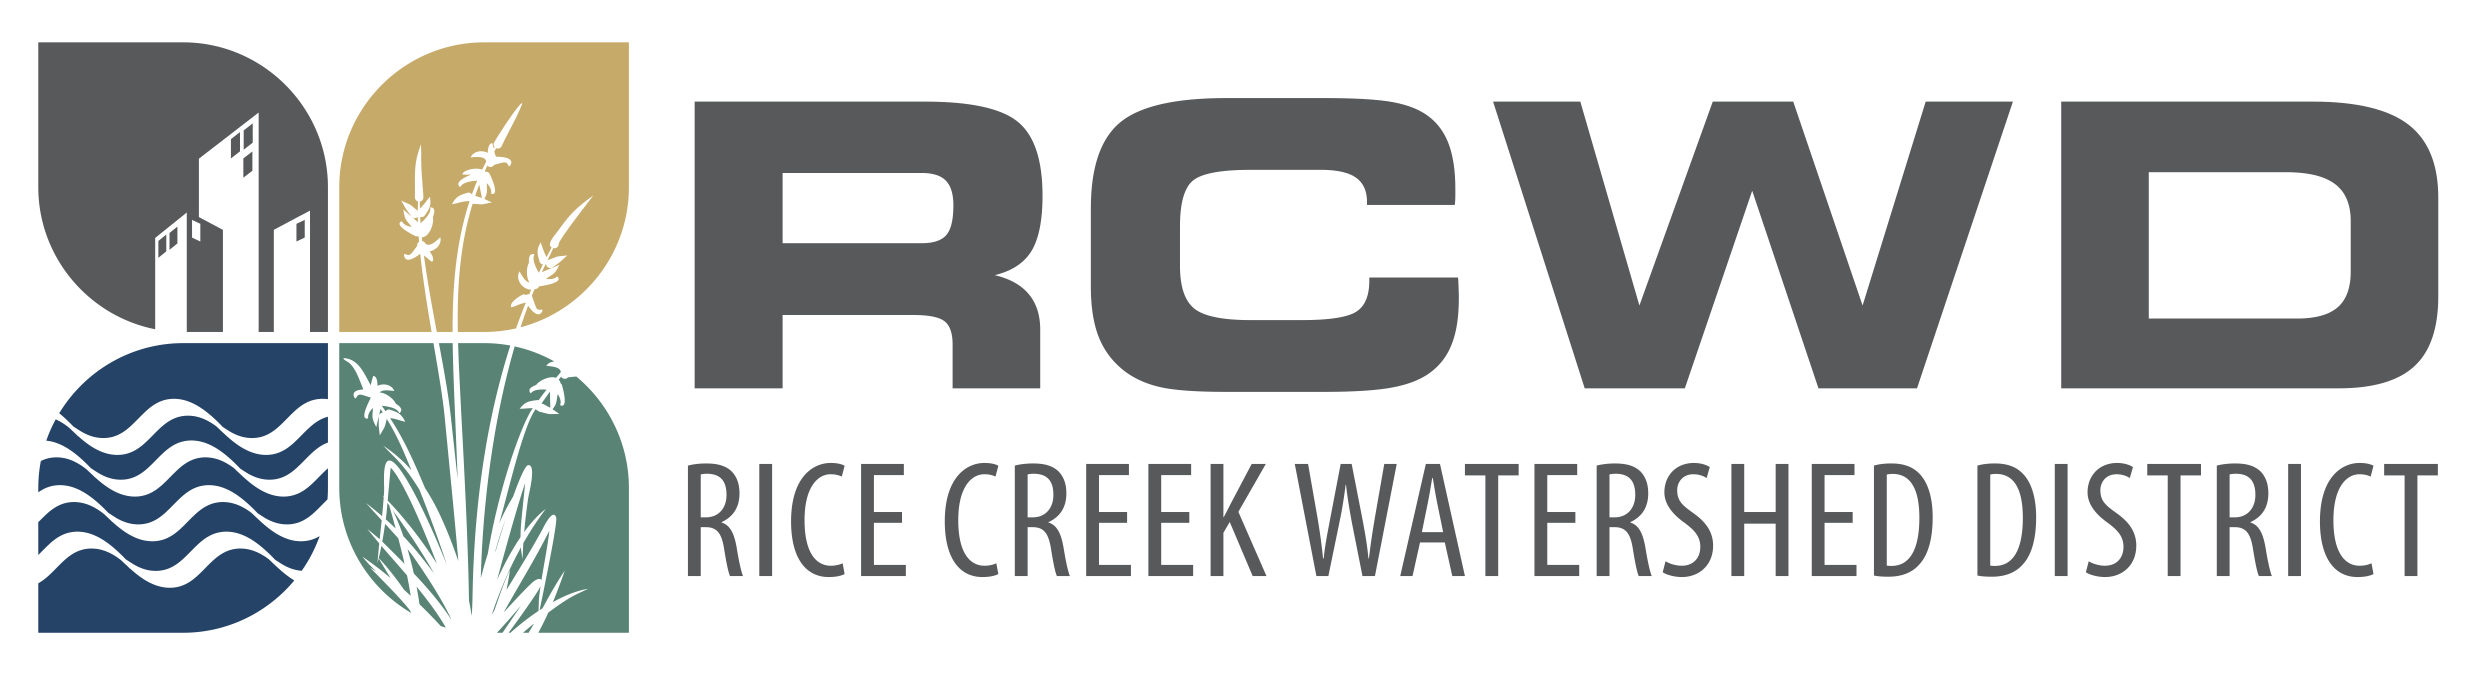 Rice Creek Watershed District logo